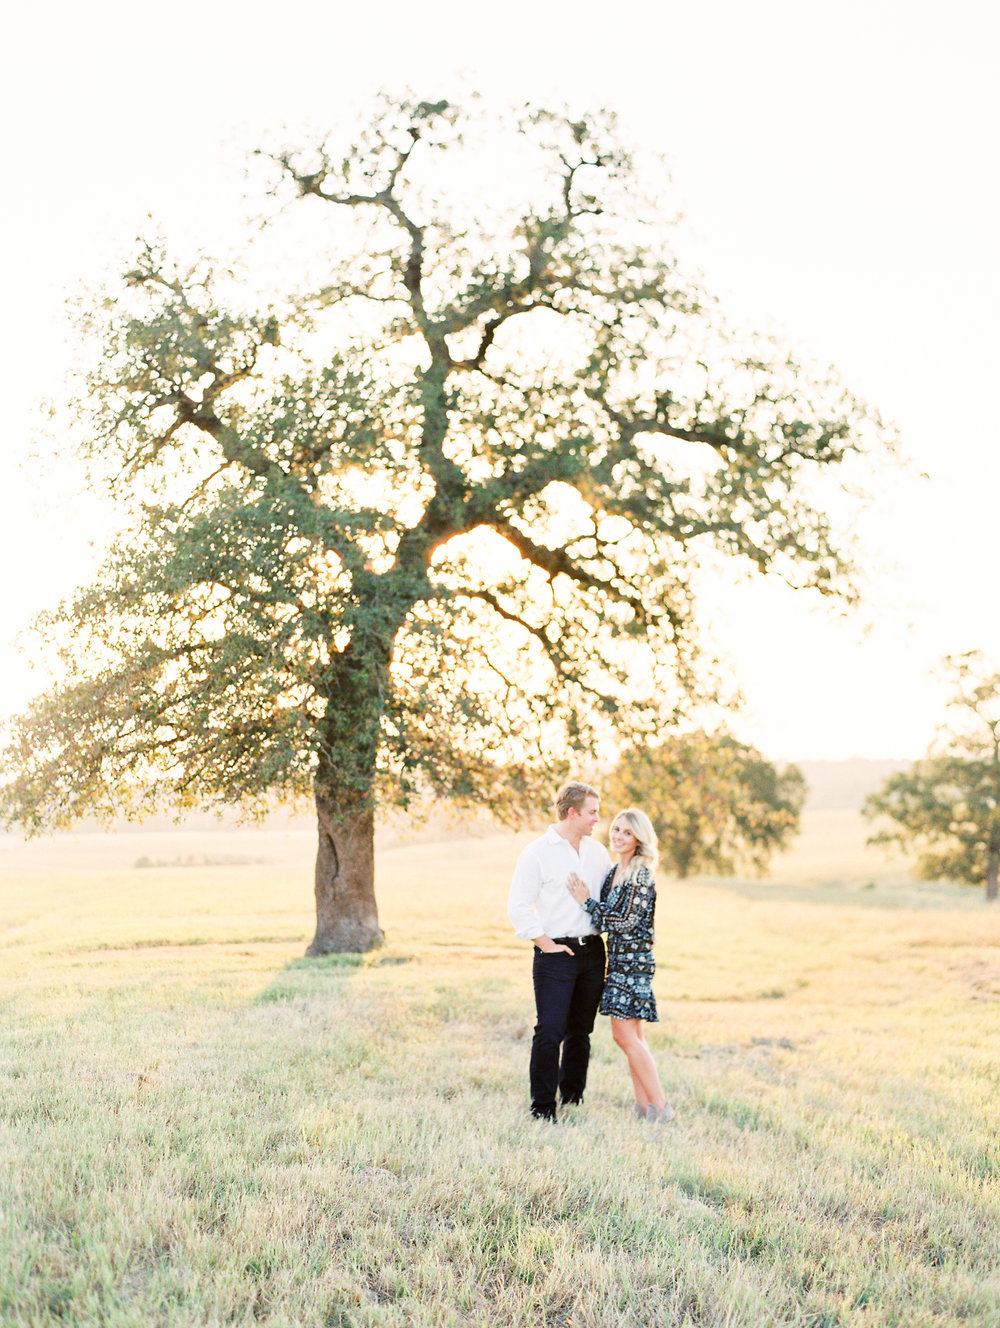 Lauren+John+Engaged+TX-43.jpg